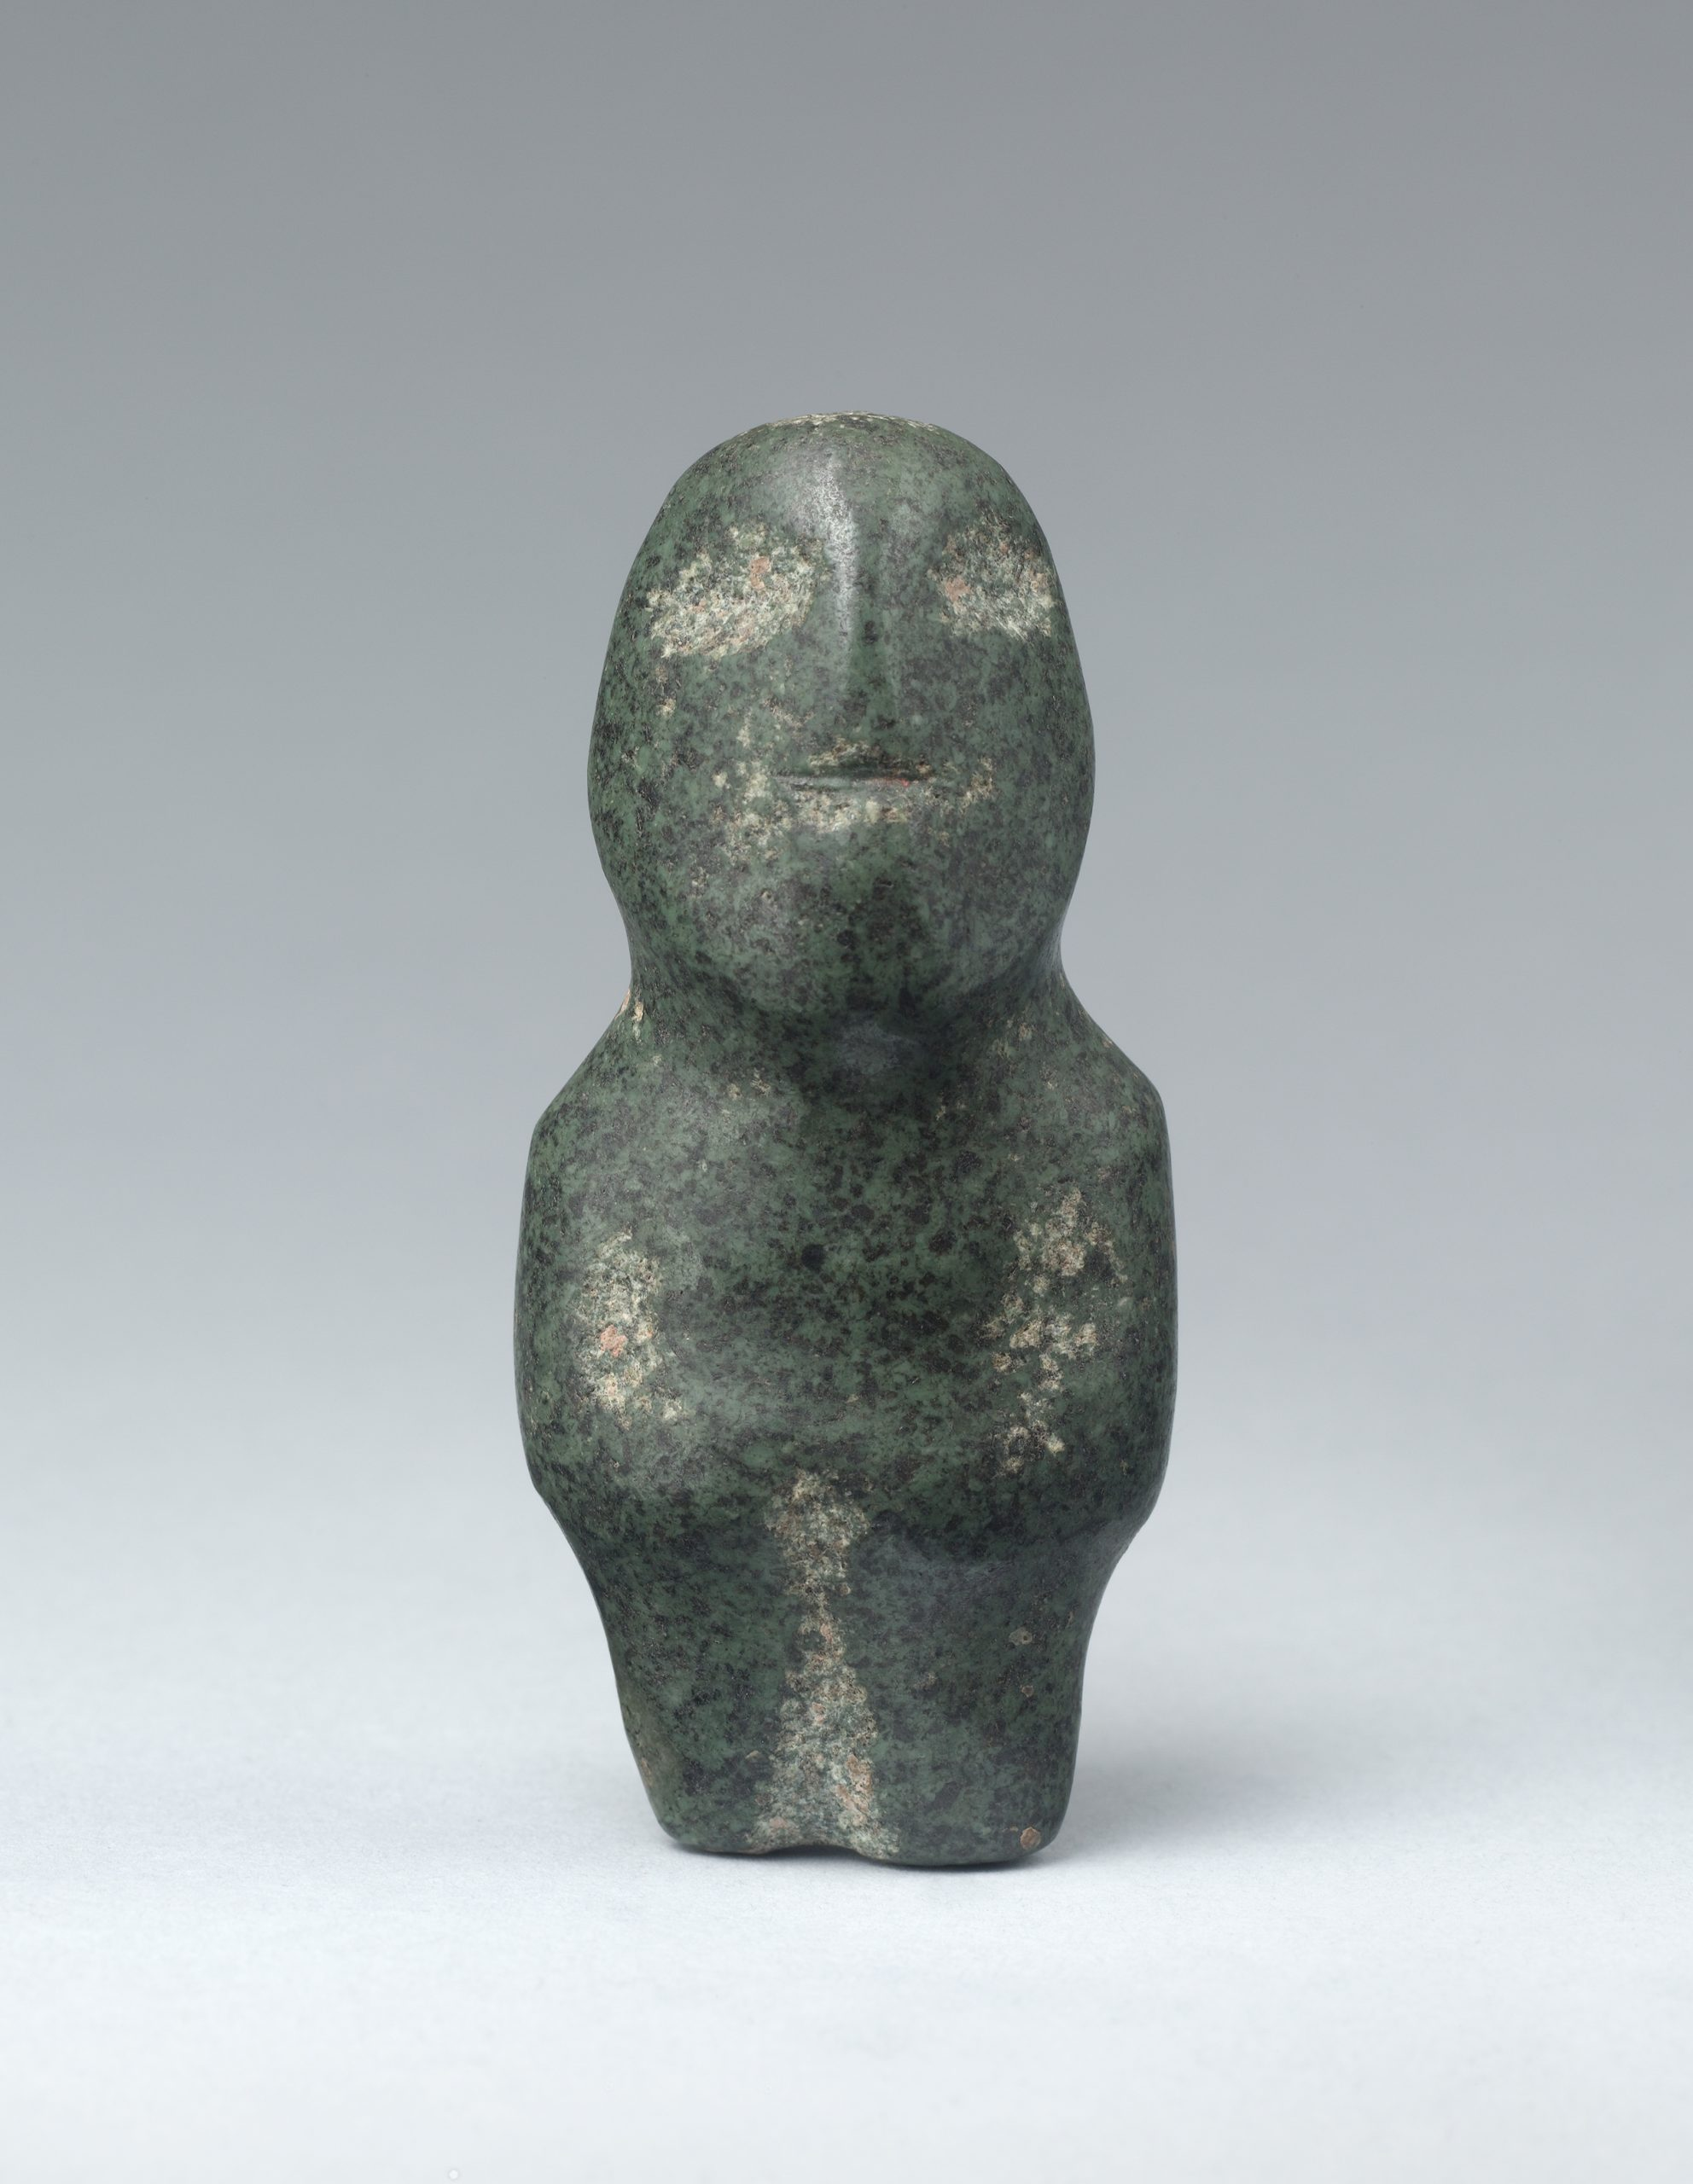 A stylized stone sculpture of a standing female figure with her arms at her side, her left leg has been broken off.